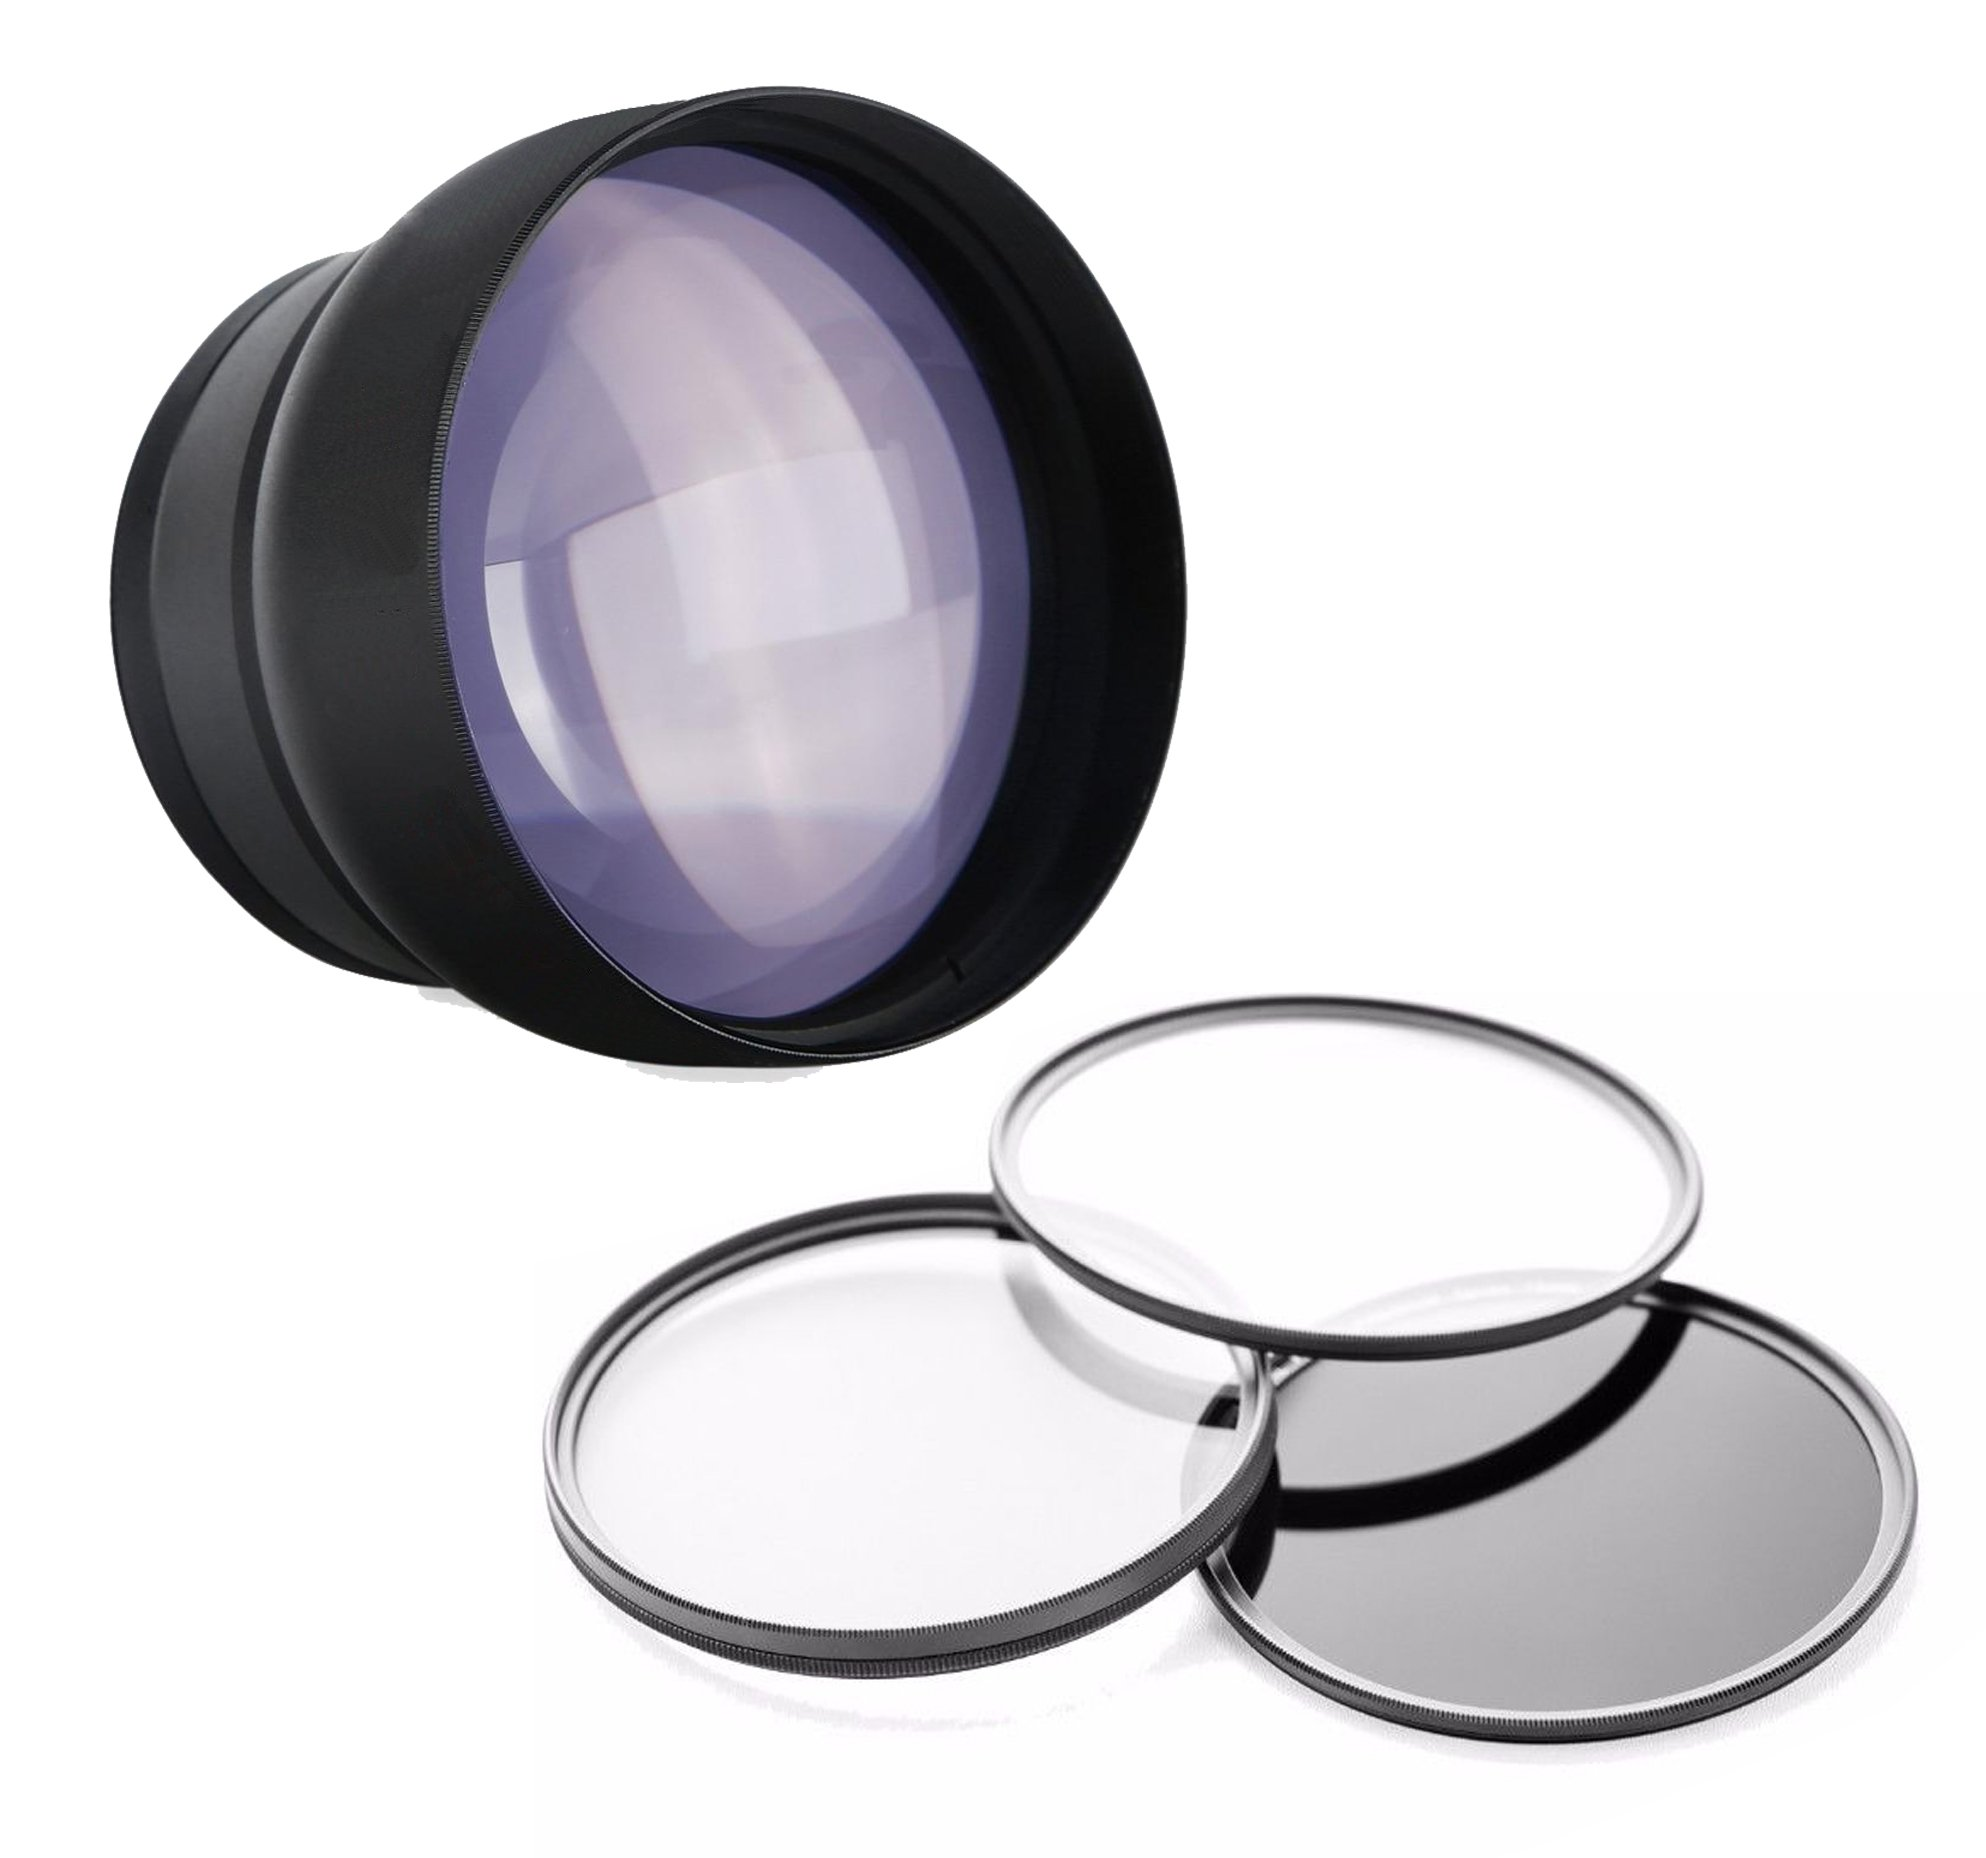 Sony FDR-AX100 2.2x High Definition Super Telephoto Lens + 62mm 3 Piece Filter Kit + Zeiss Cloth